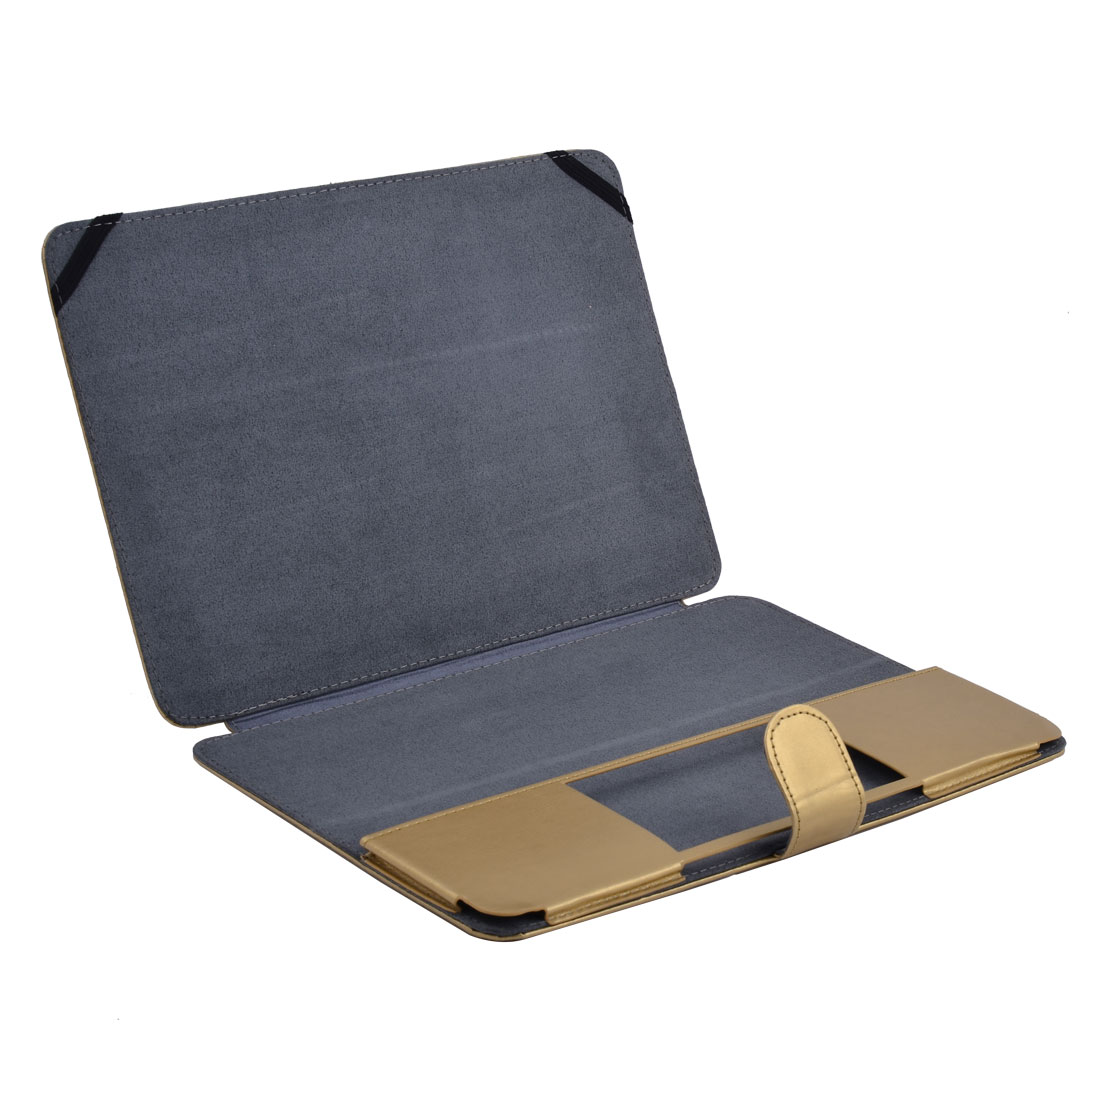 PU Leather Laptop Sleeve Clip On Folio Case Gold Tone for Macbook Retina 12 Inch